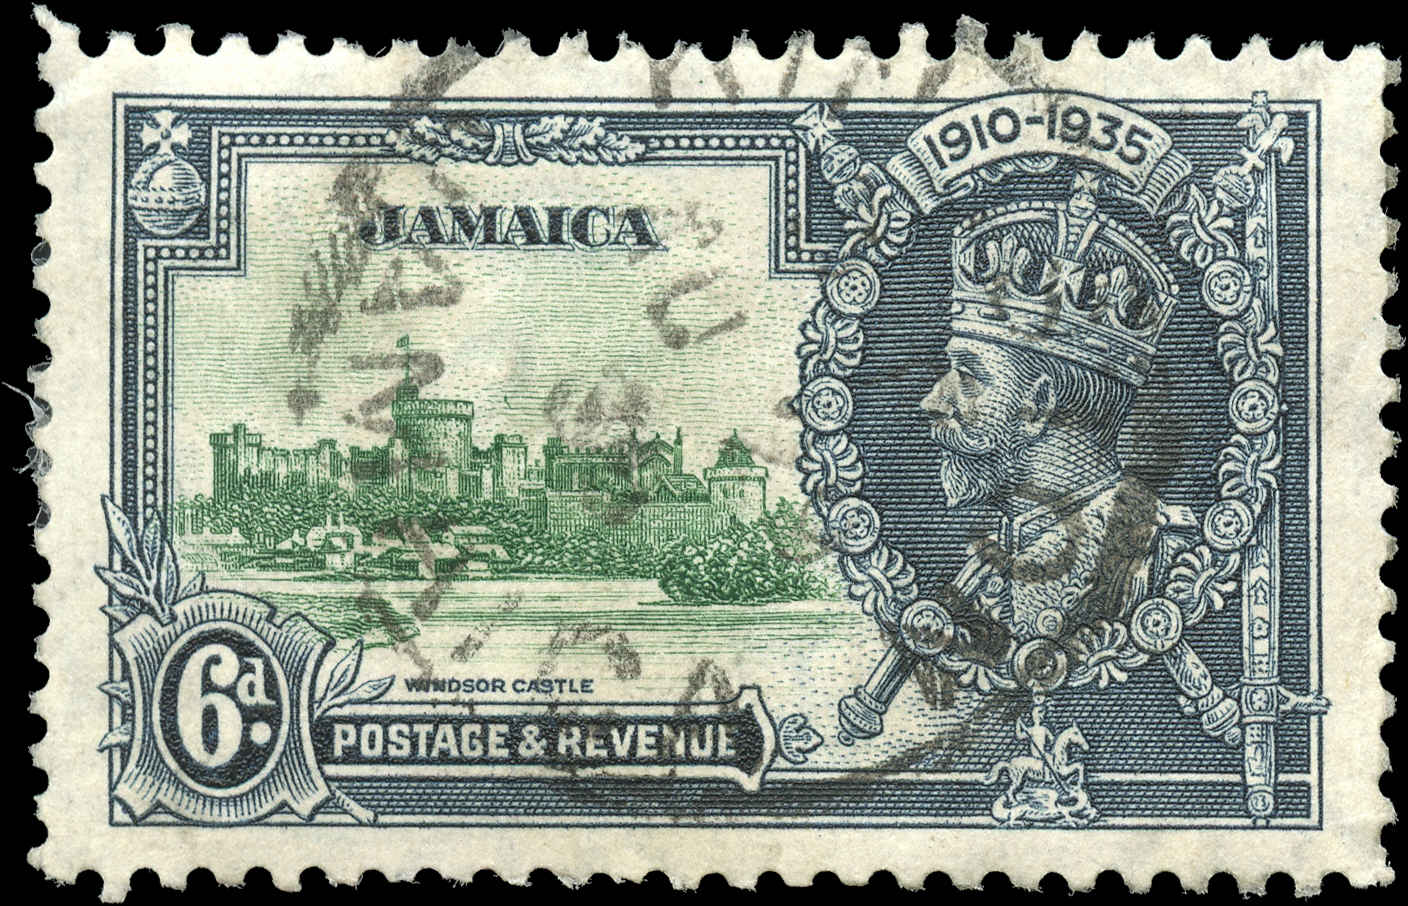 Jamaica, #111, VF, Used